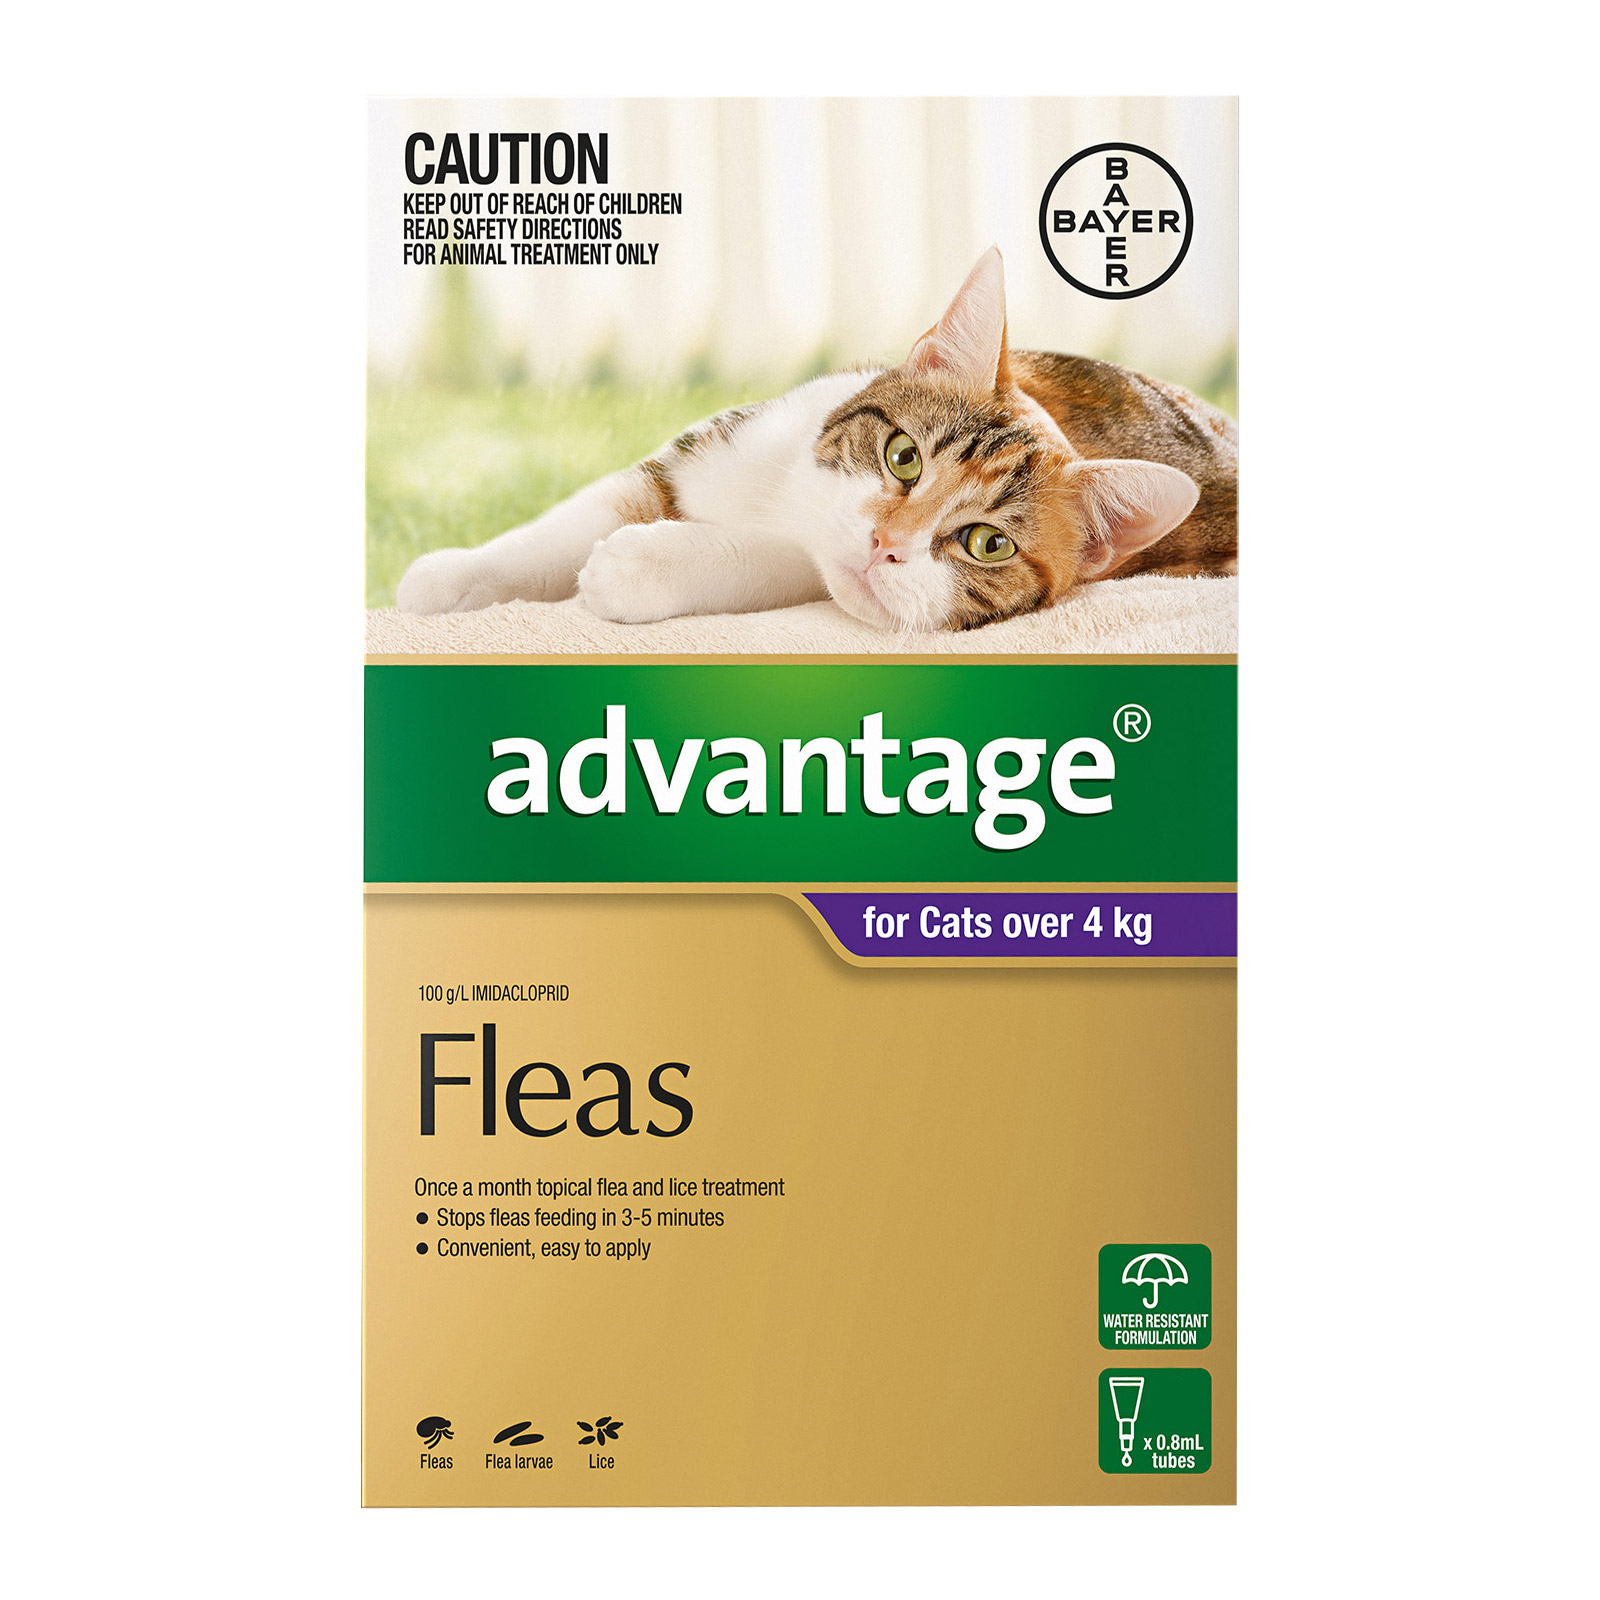 advantage-for-cats-over-4kg-purple-1.jpg